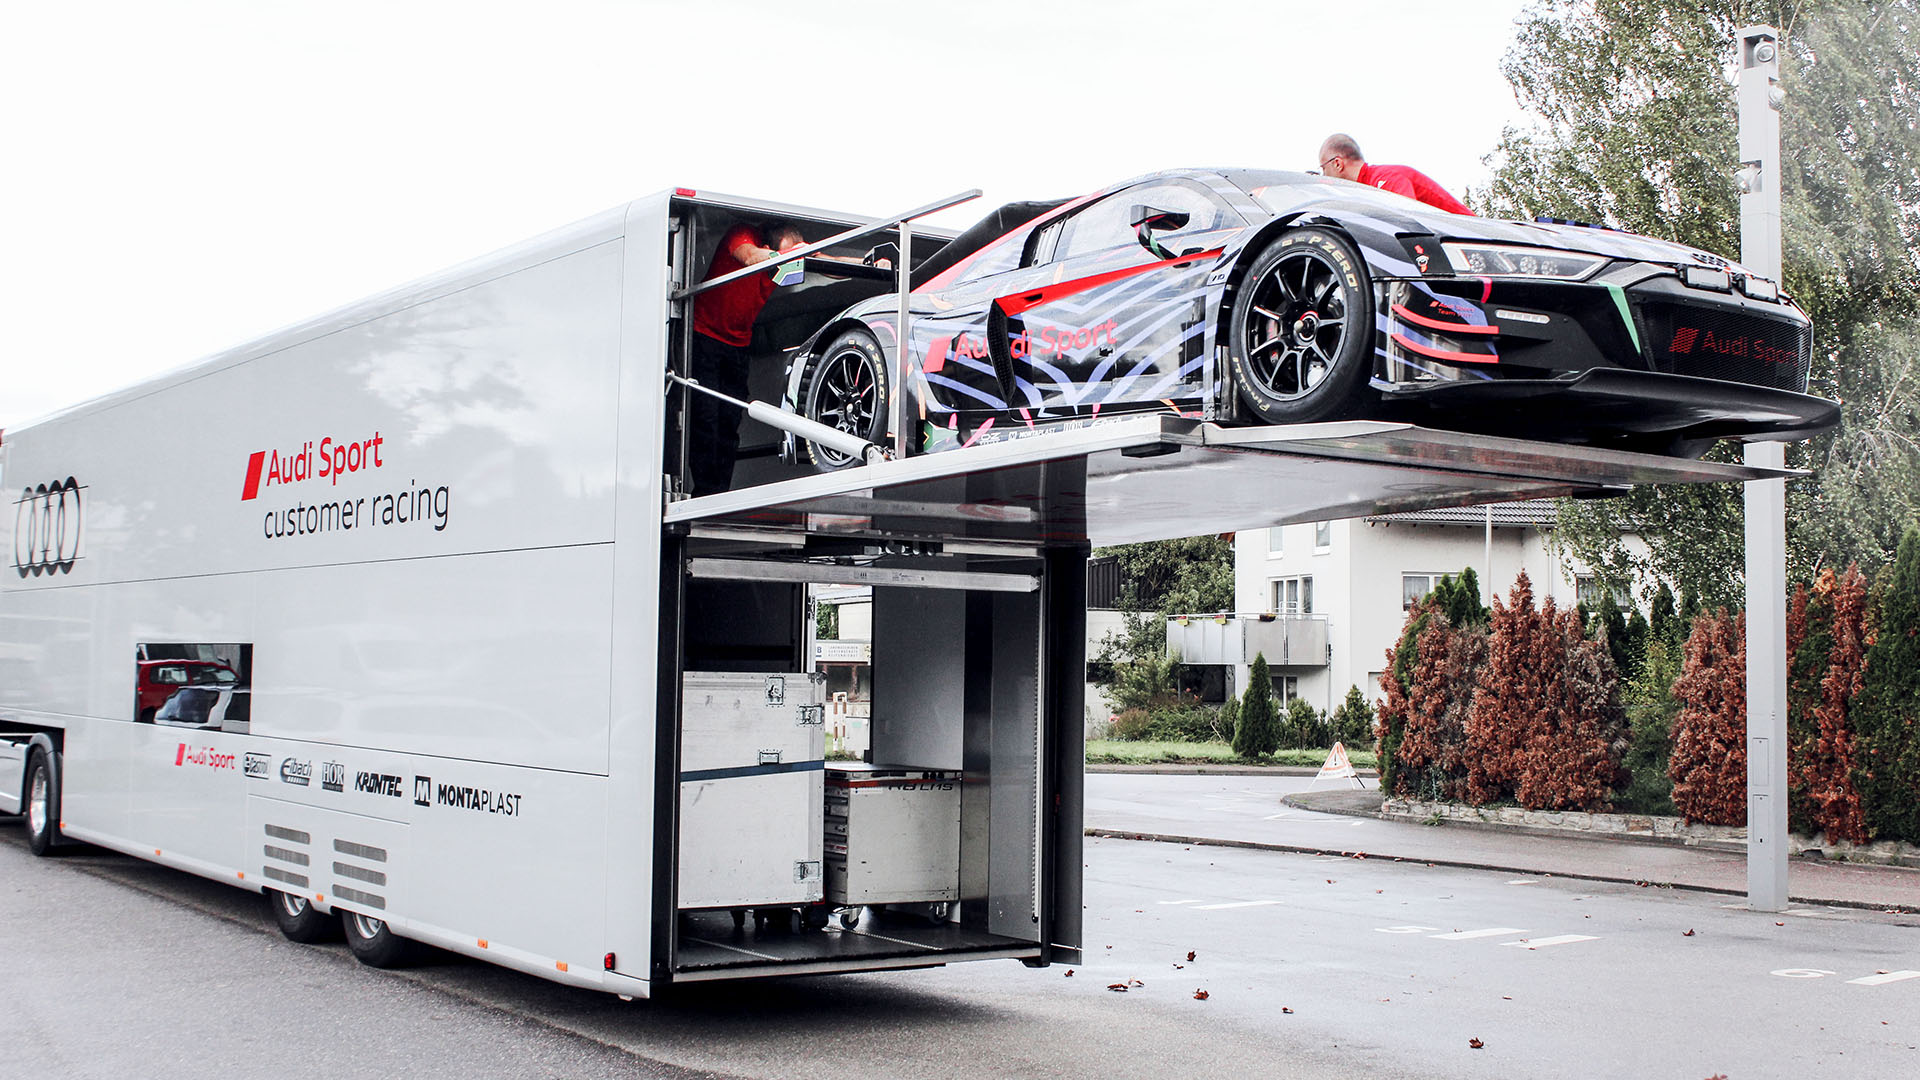 Audi R8 LMS on the truck